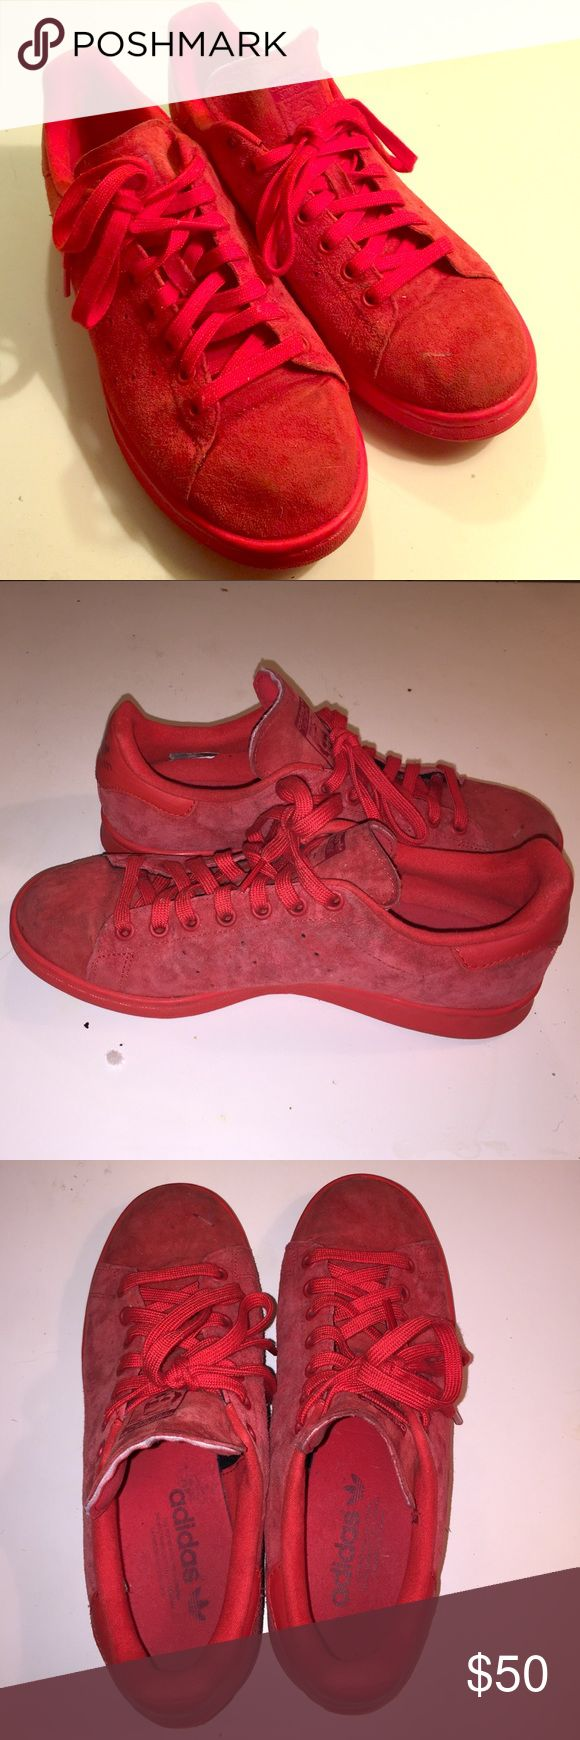 Adidas Original Stan Smiths Adidas Originals. Stan Smith. Red suede. Lightly worn. Unisex men's size 8/women's size 10 Adidas Shoes Sneakers